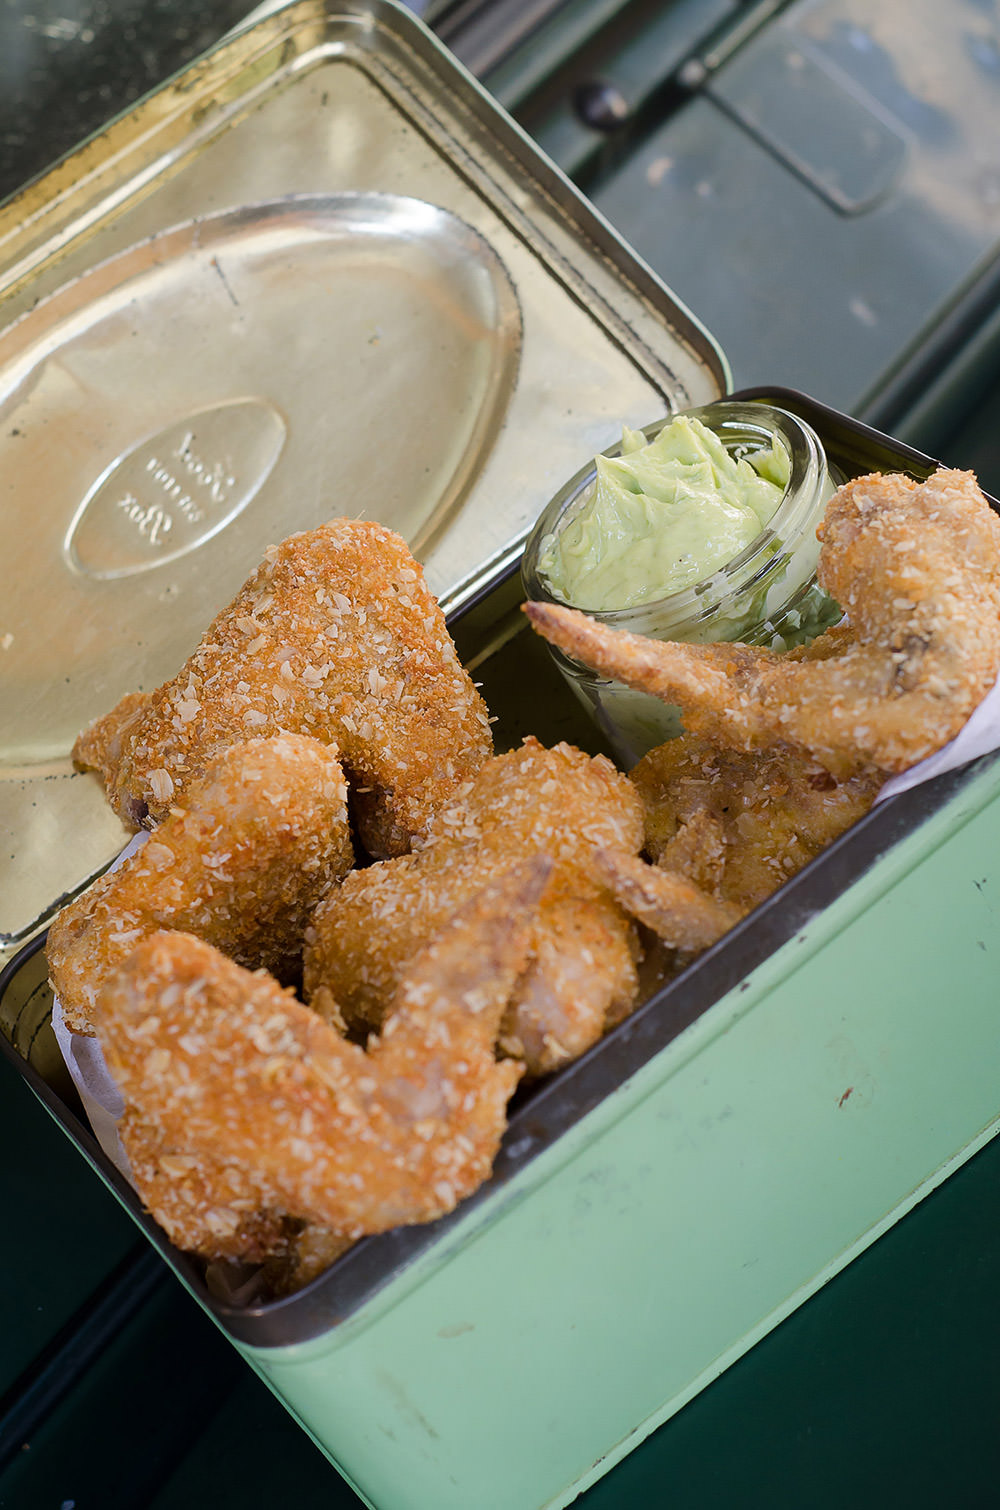 Oats Coated Chicken Wings and a Herb Mayonnaise / Karen E. Photography (p)